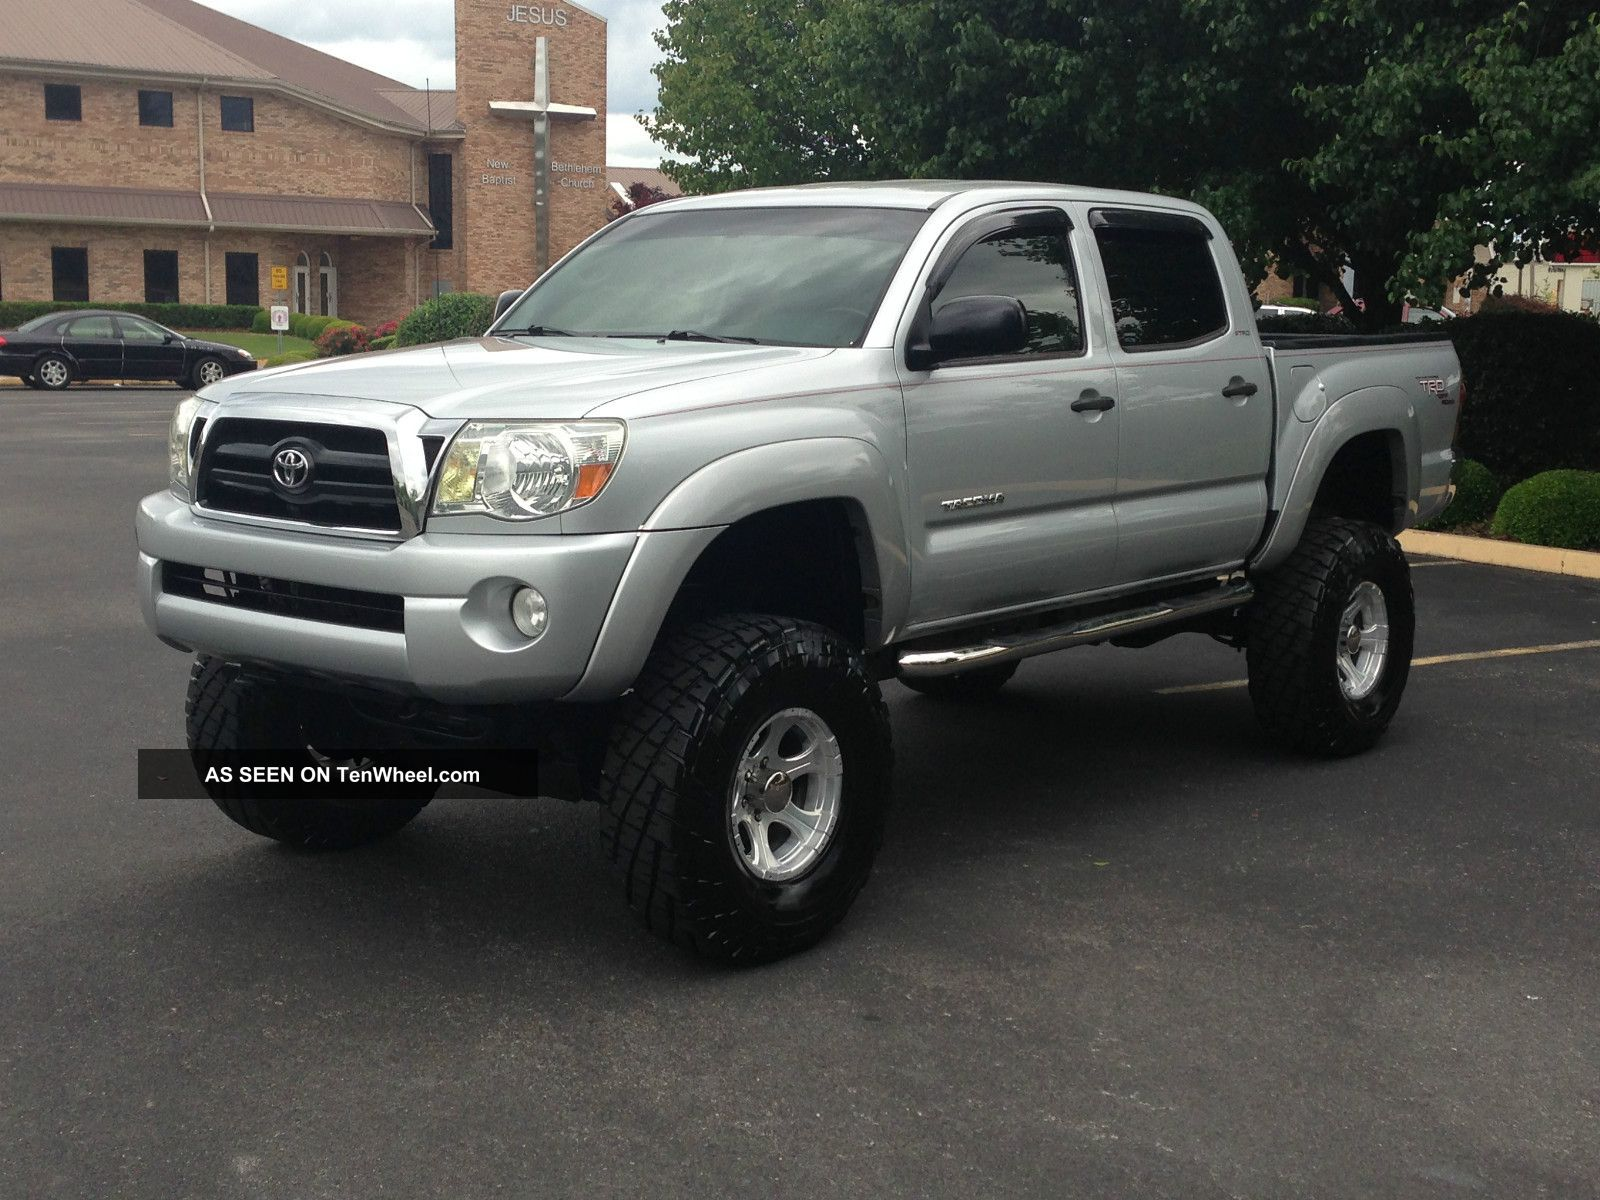 2006 Toyota Tacoma Sr5 Crew Cab Trd Off Road Lifted Tacoma photo